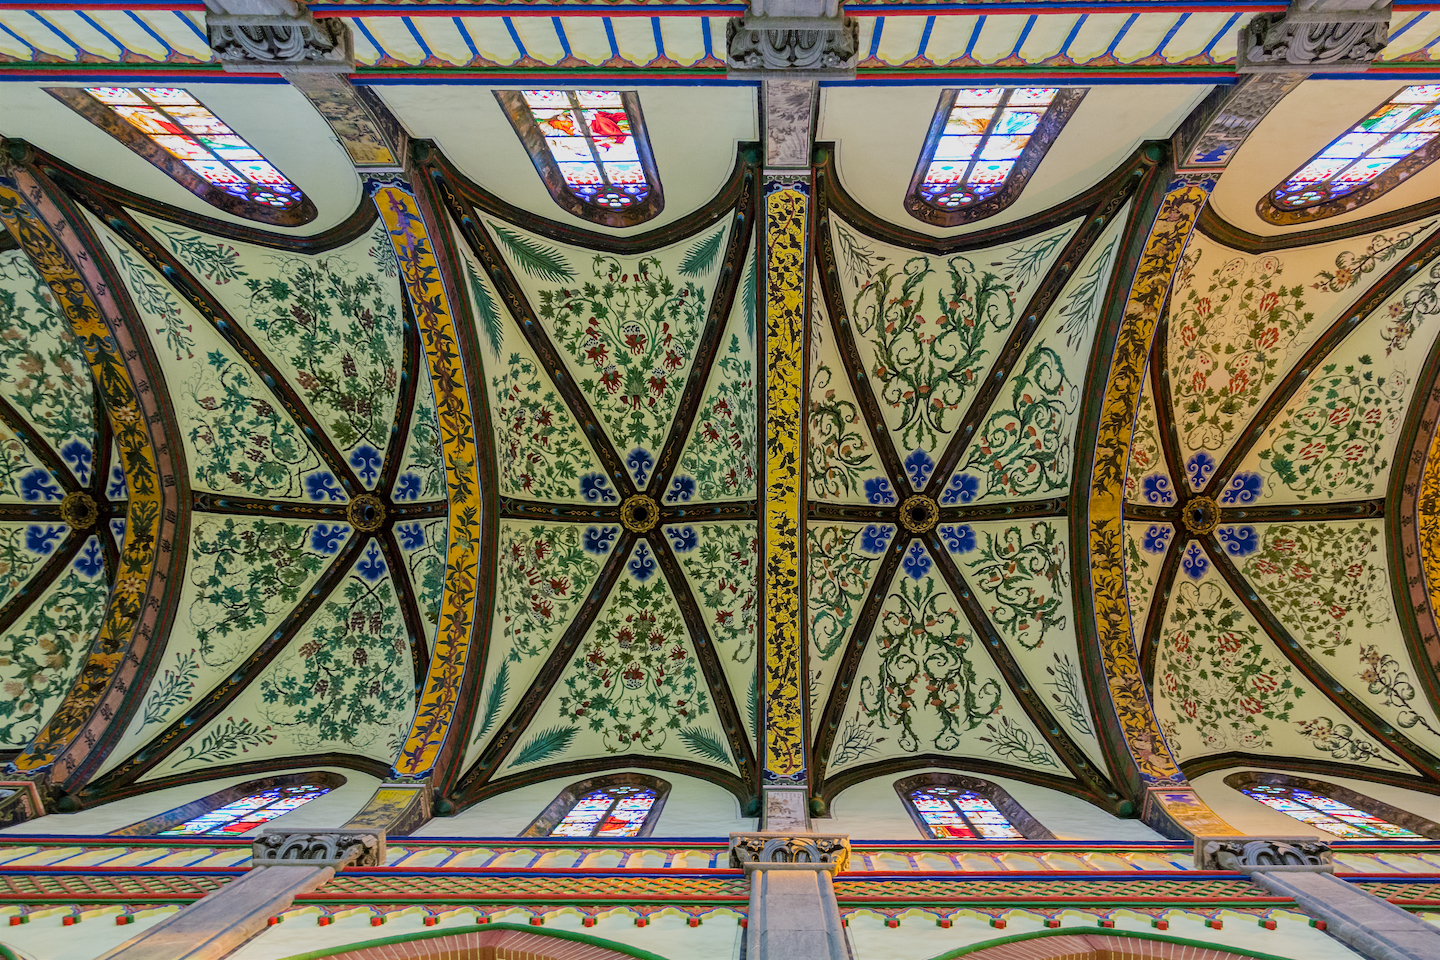 The Spectacular Ceiling at St. Joseph's Cathedral